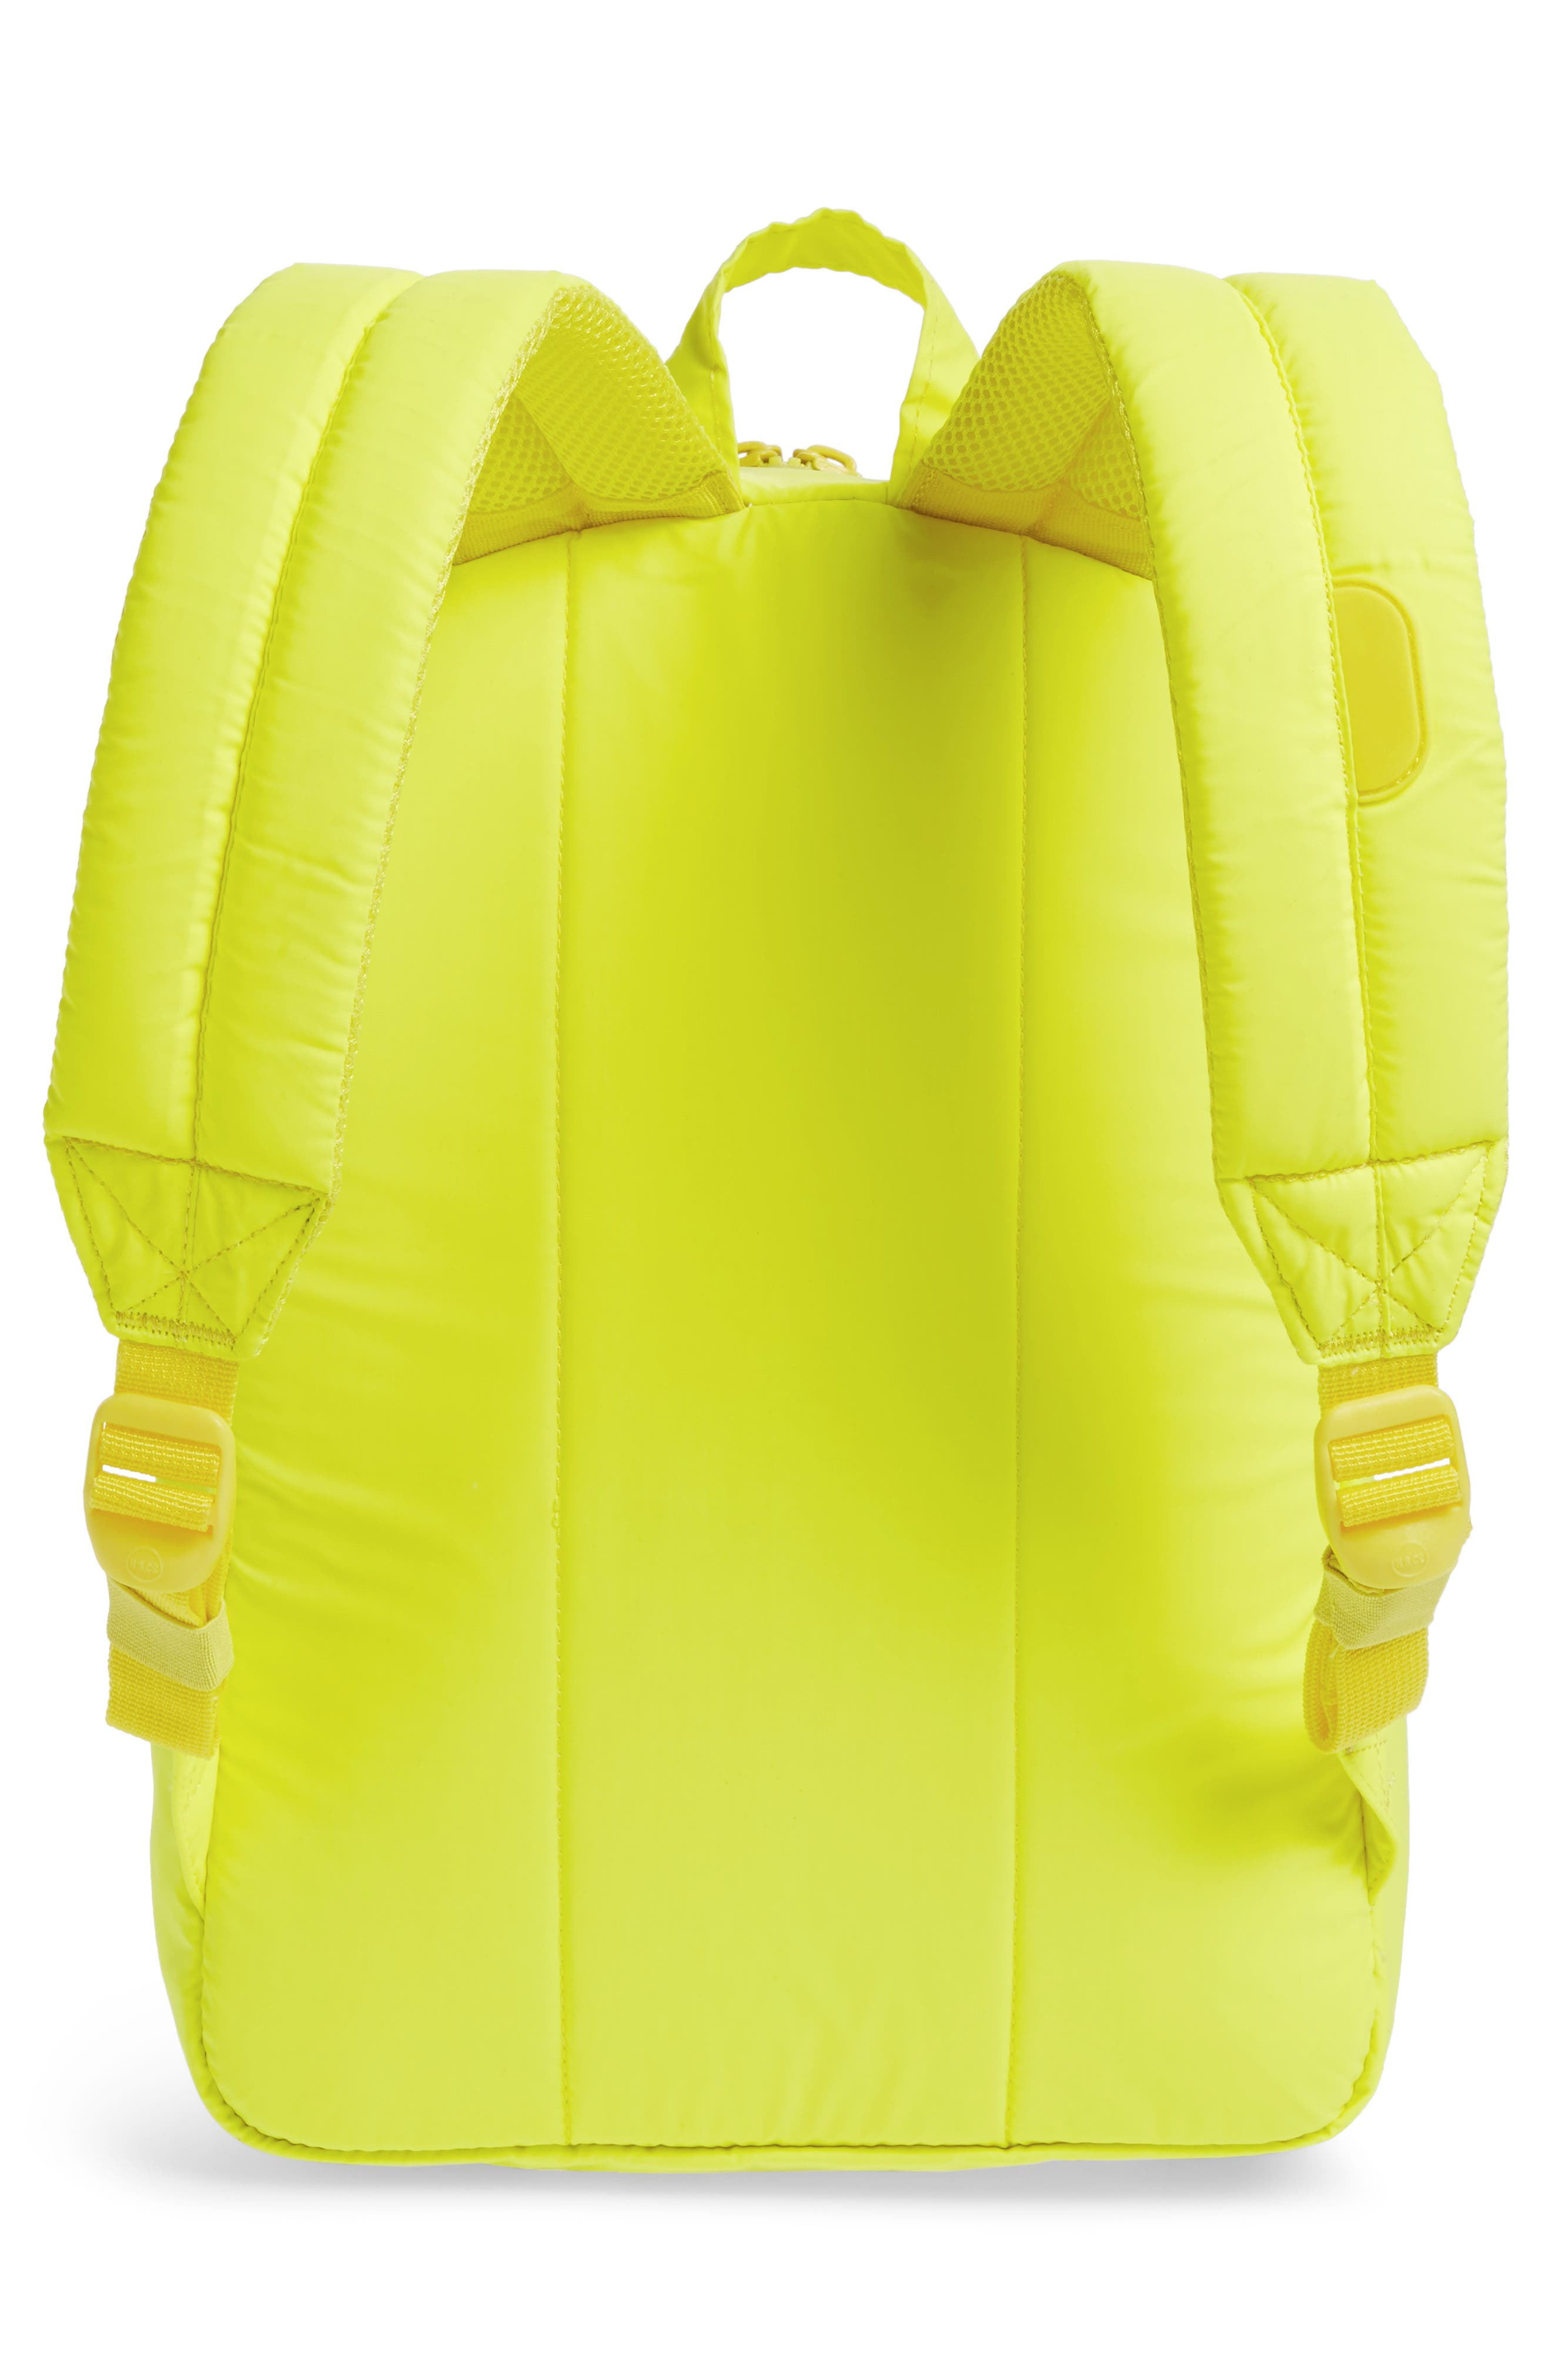 Heritage Backpack,                             Alternate thumbnail 2, color,                             Neon Yellow Reflective Rubber